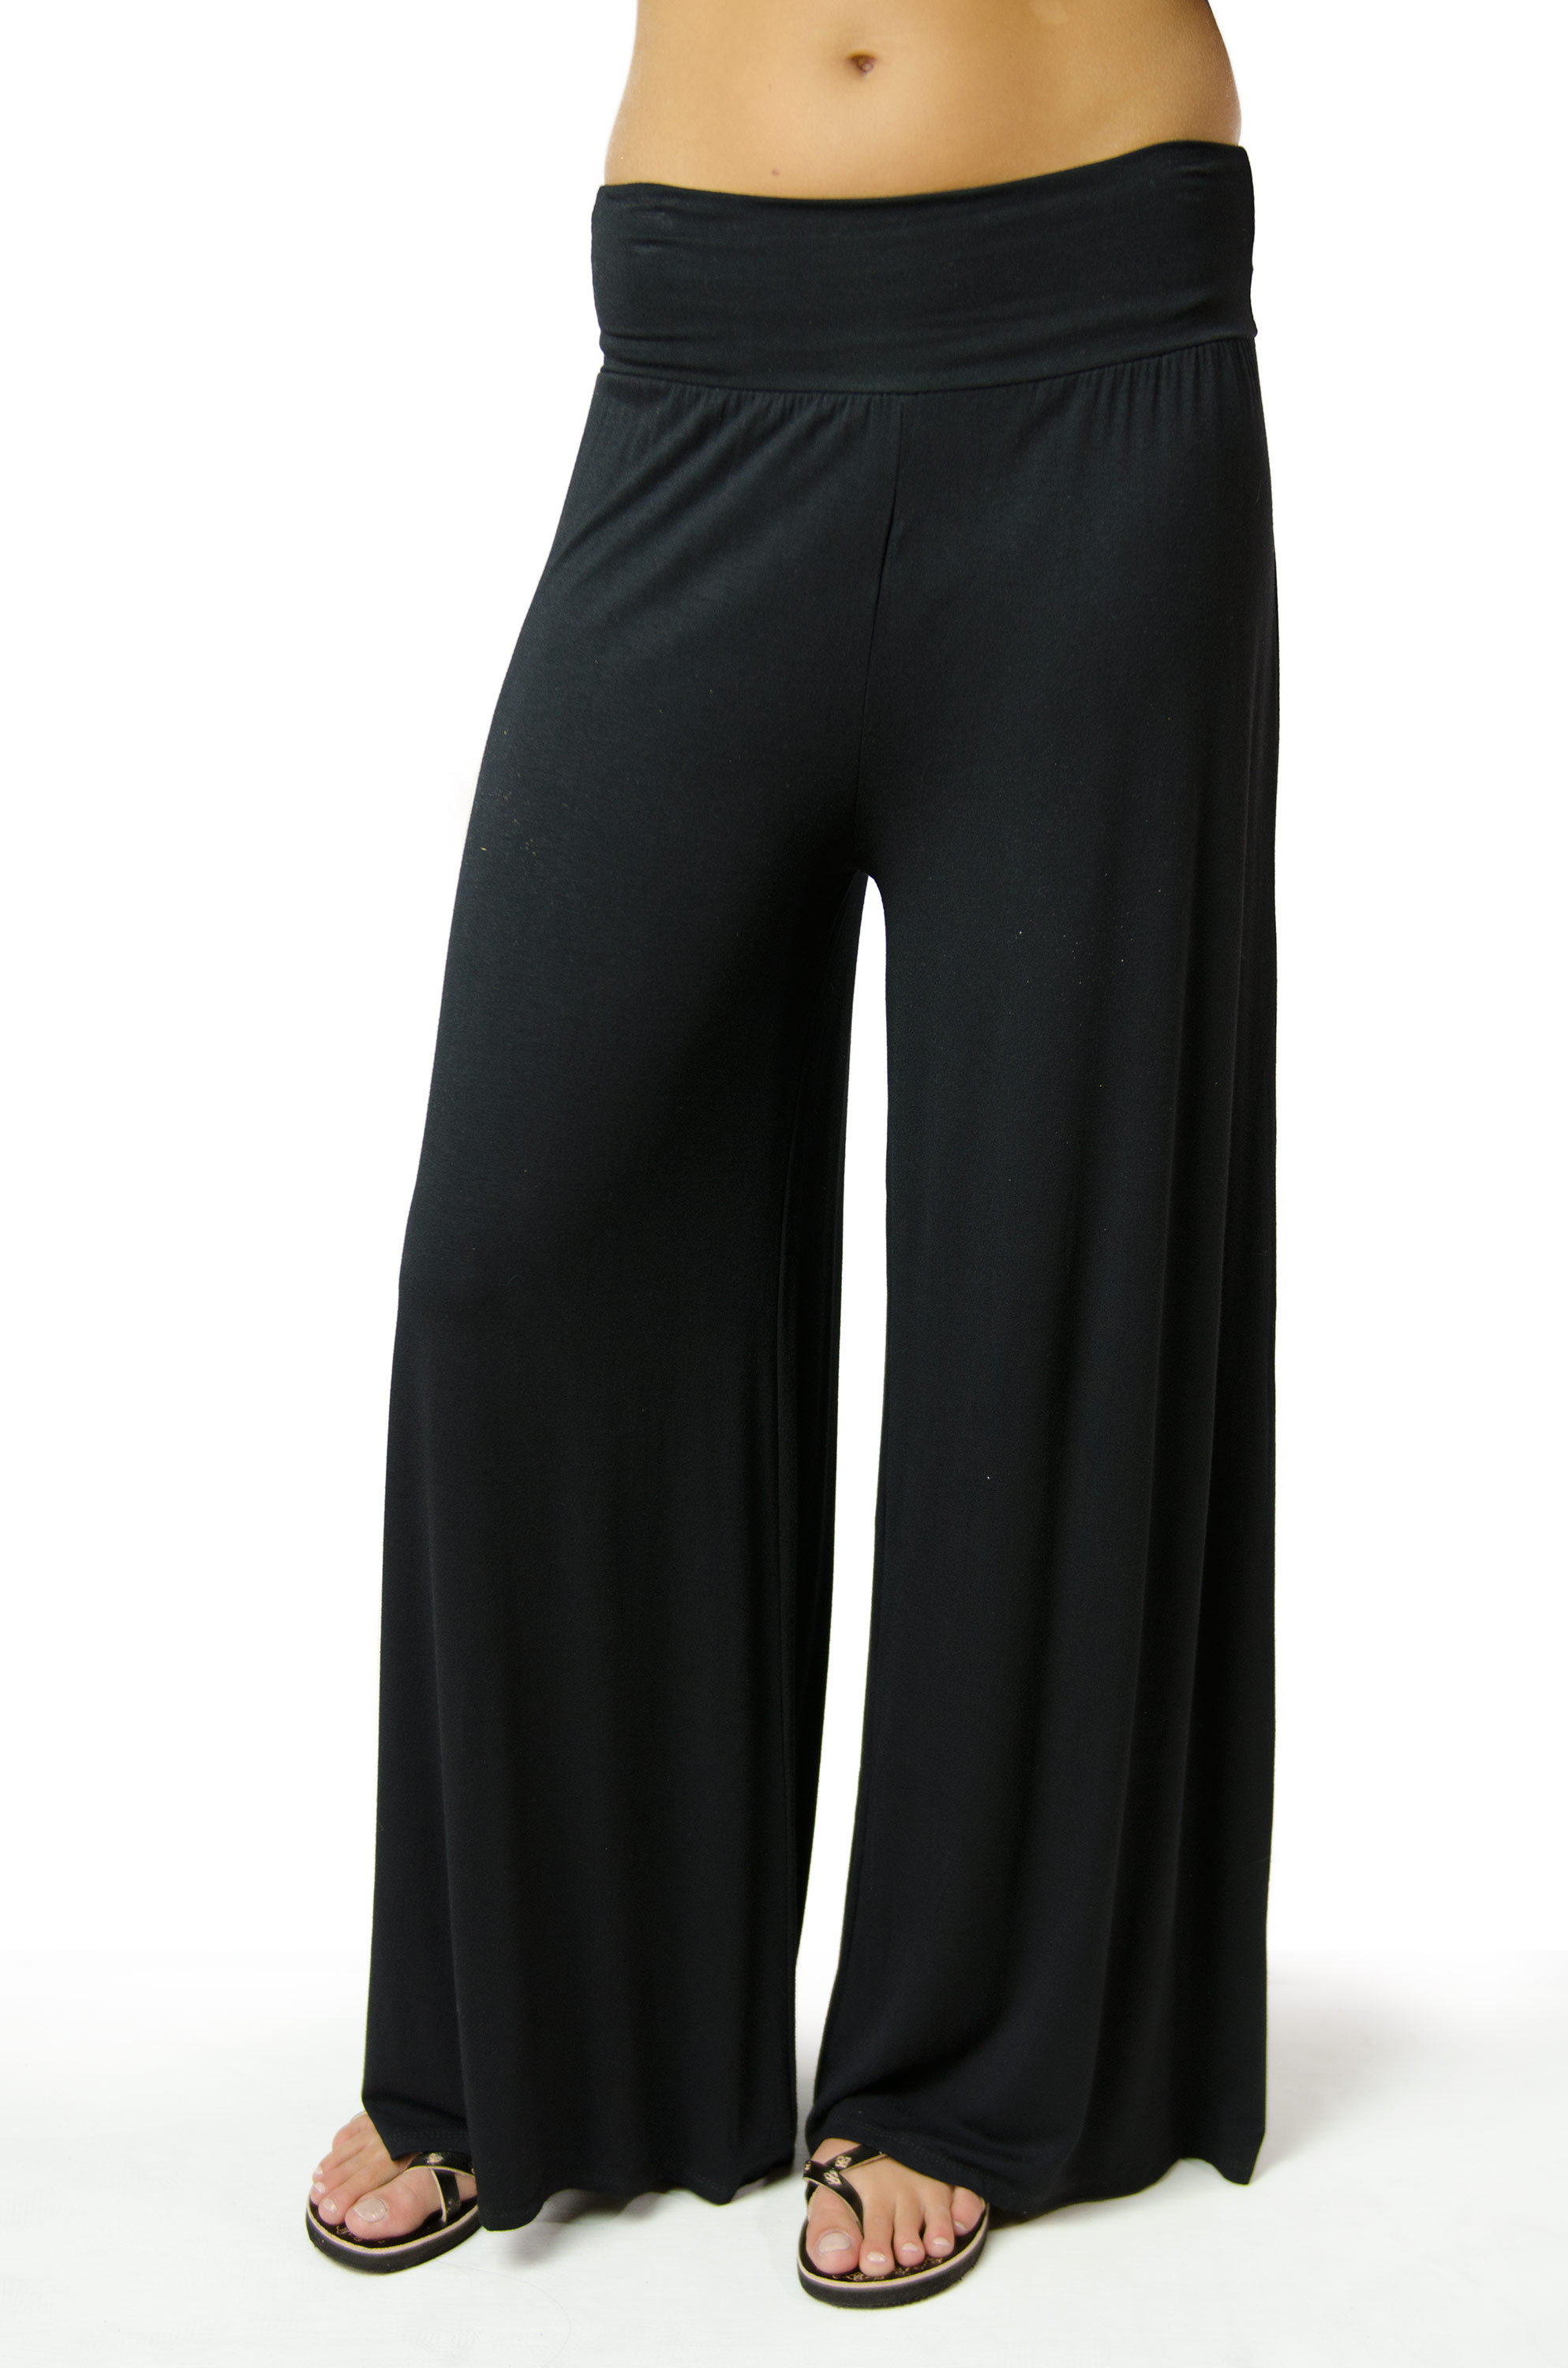 Wide Leg Pant, Solid Color, Black - 2368-K